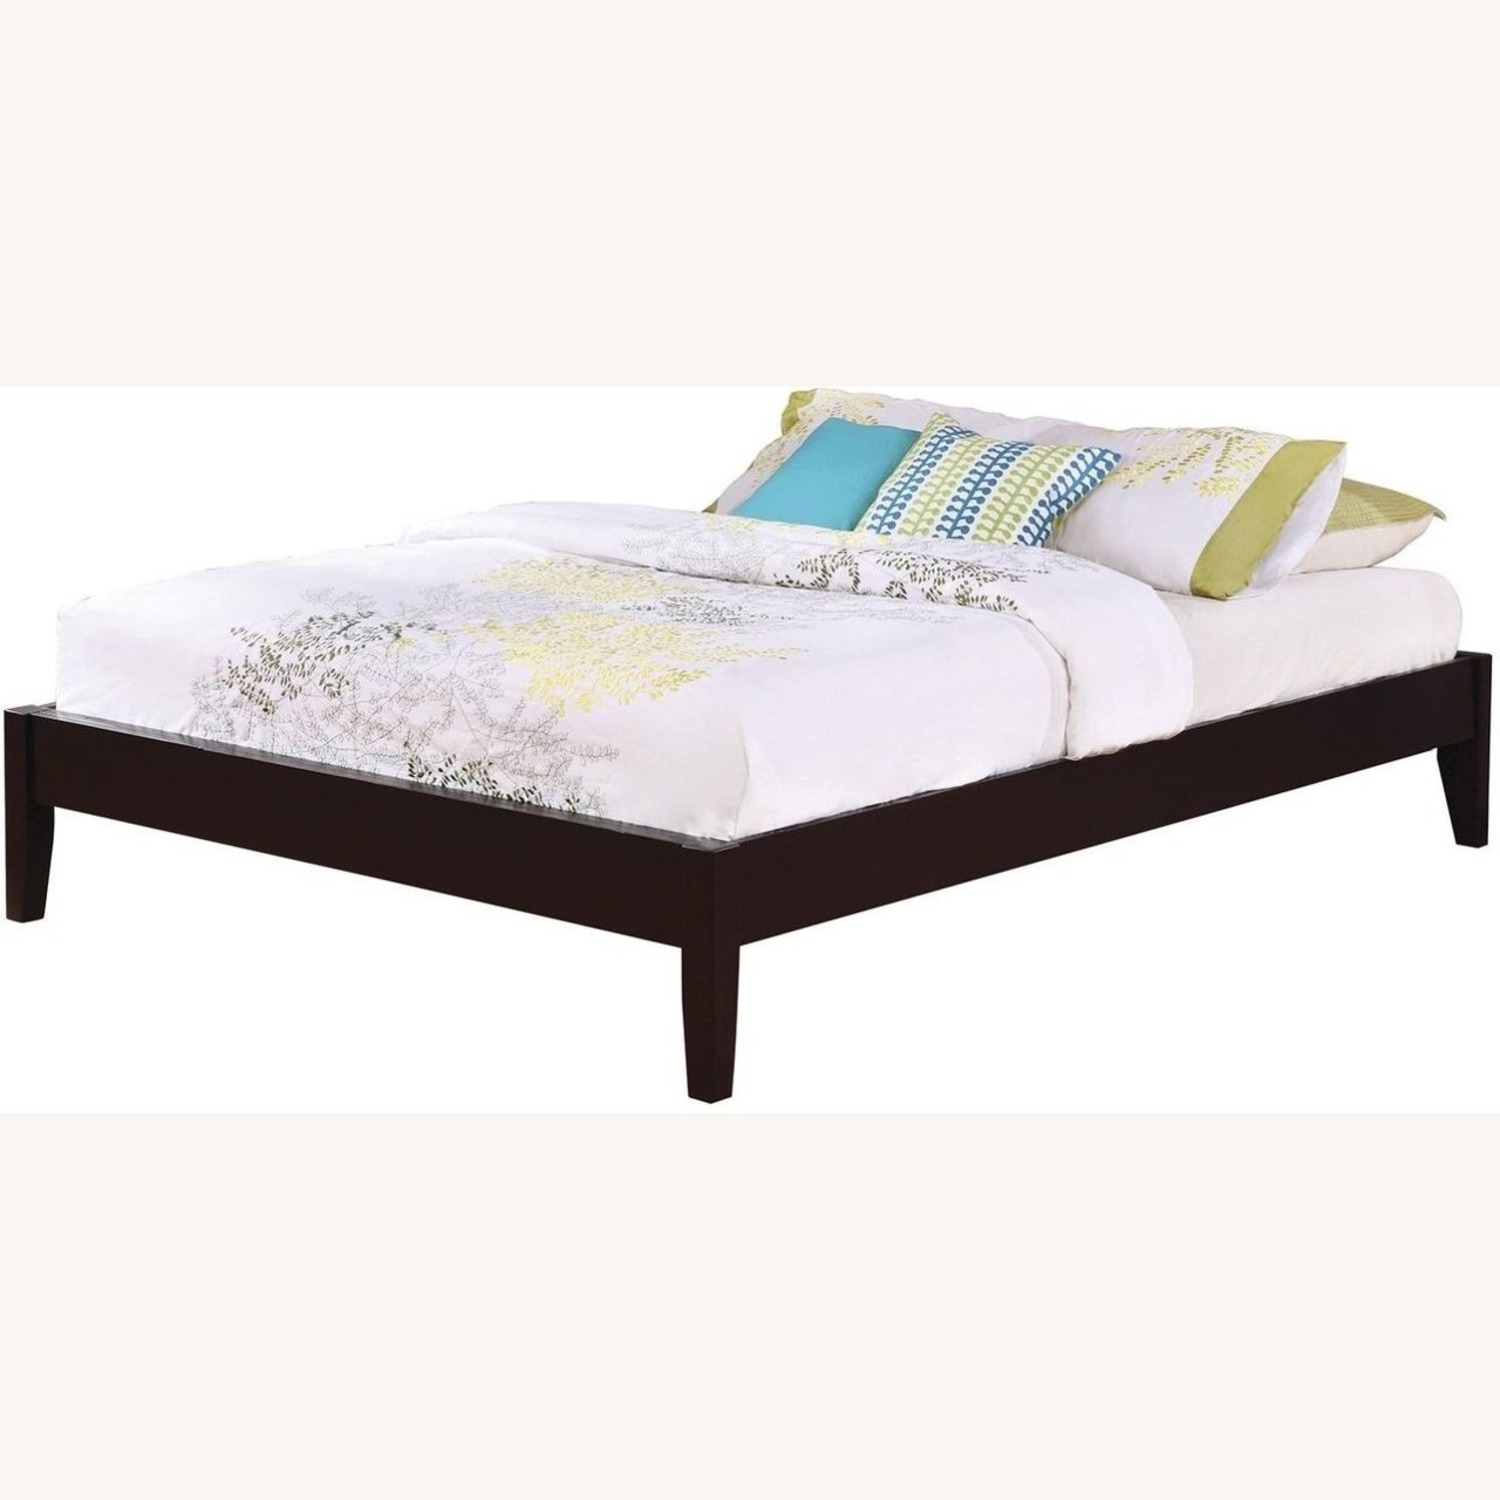 Versatile King Bed In Cappuccino Finish - image-1